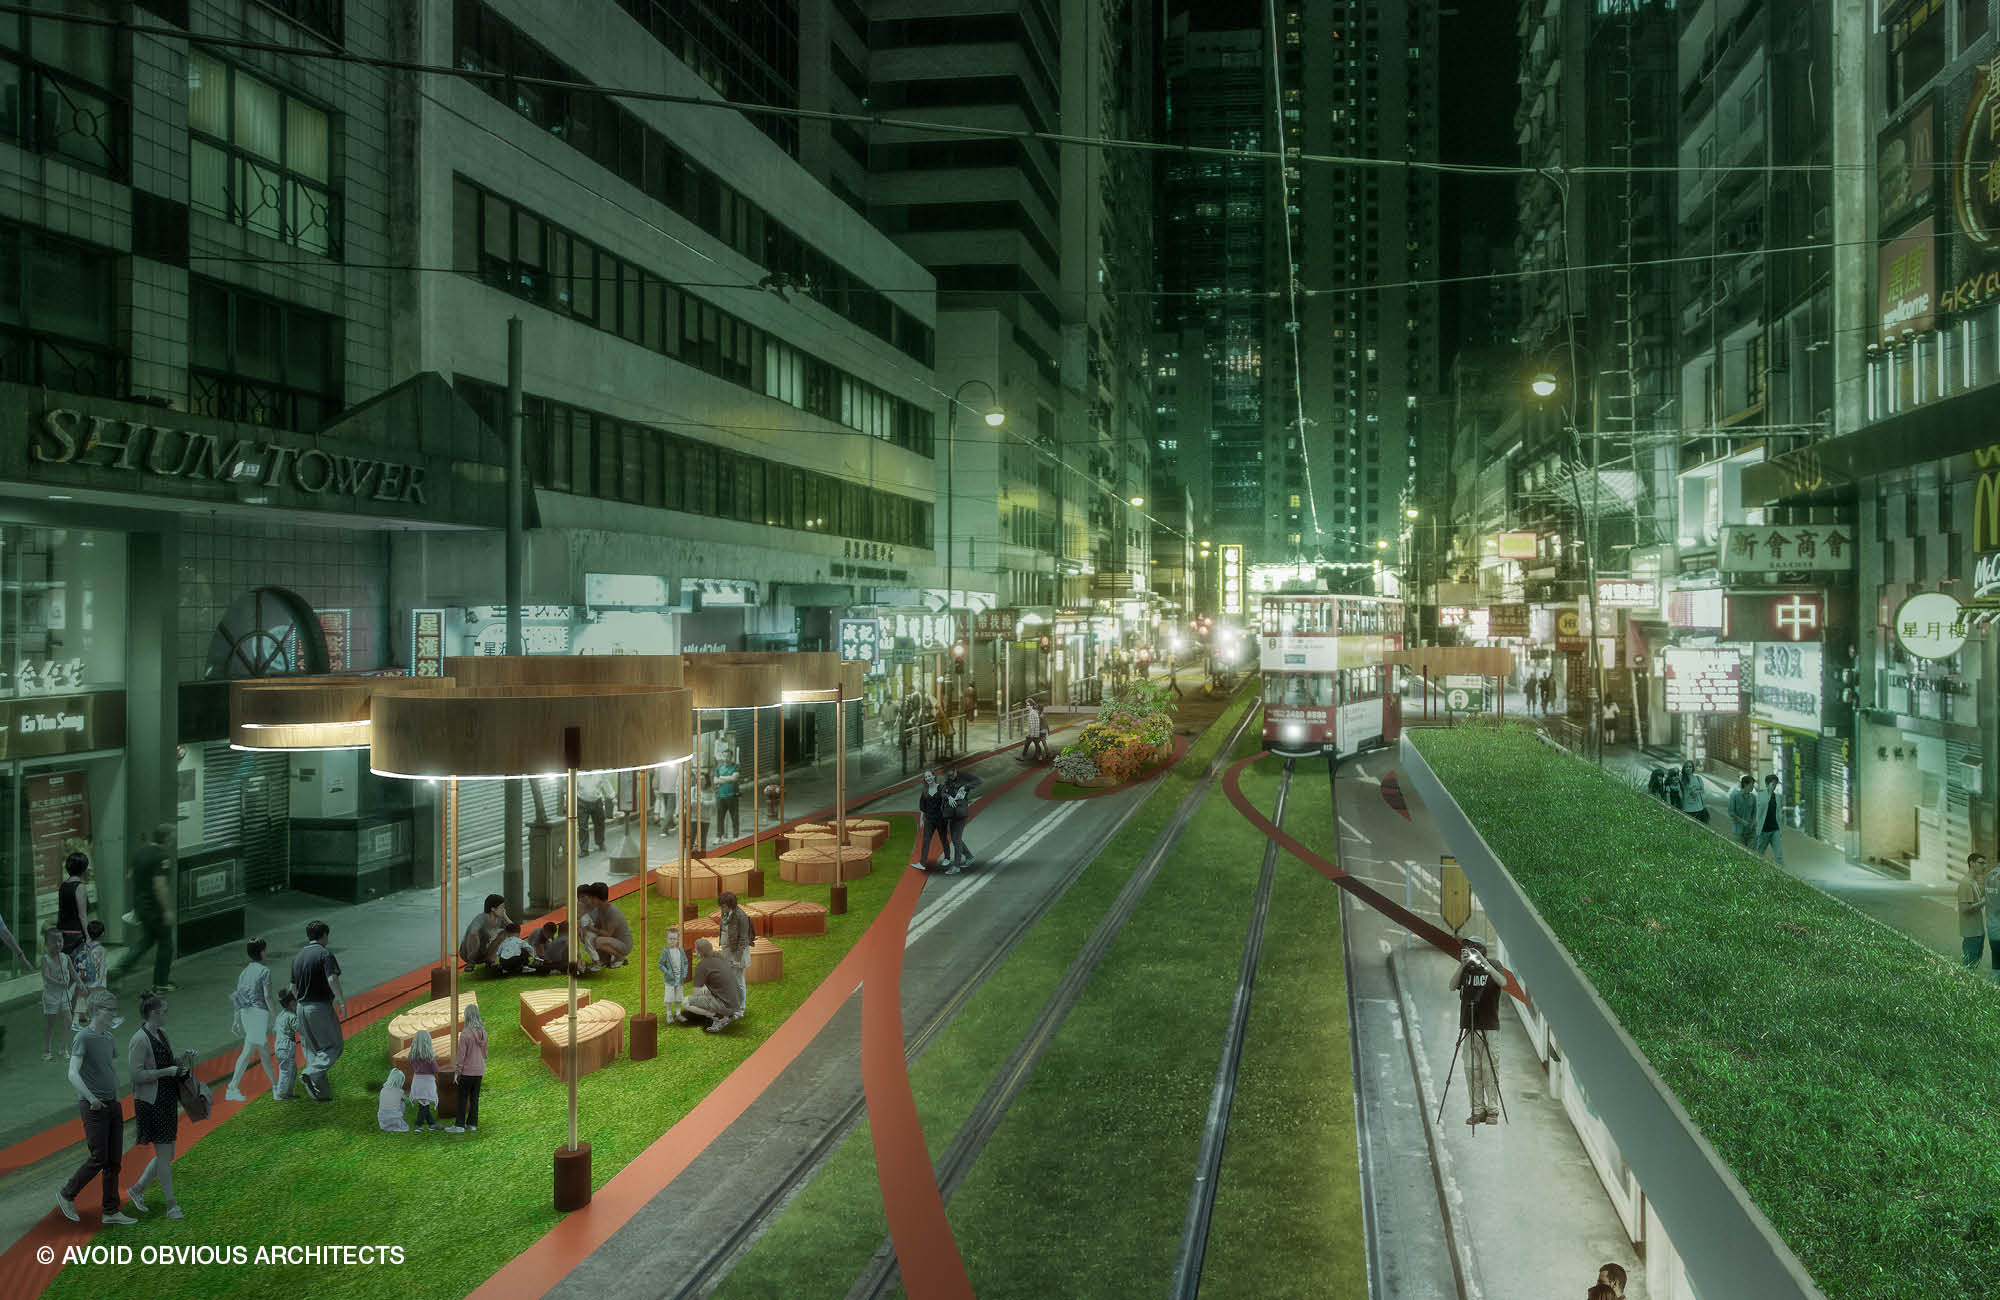 future, city, pedestrization, walk dvrc, hong kong, central, architect, urban, planning, design, landscape, avoid obvious, vicky chan, sustainable, innovative, inclusive, walkable, road, park, plants, bamboo, pavilion